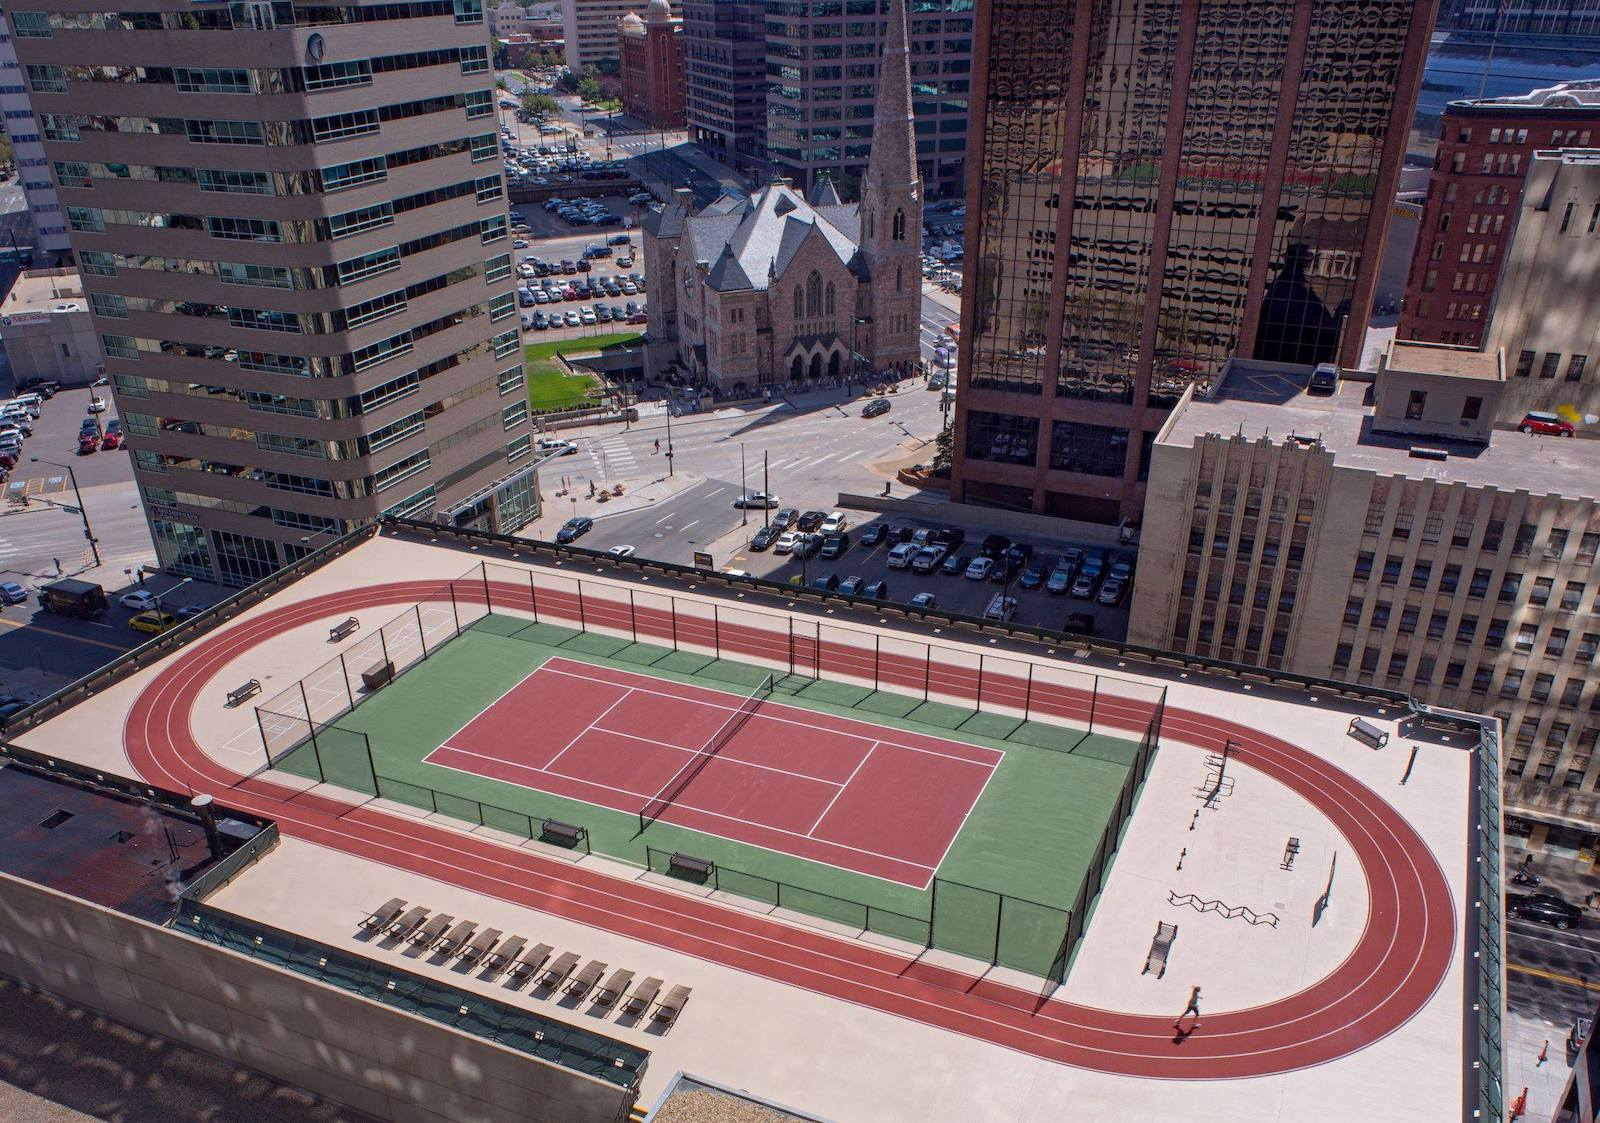 Take advantage of this sunny weather with a game of tennis on our rooftop Skycourt, CO